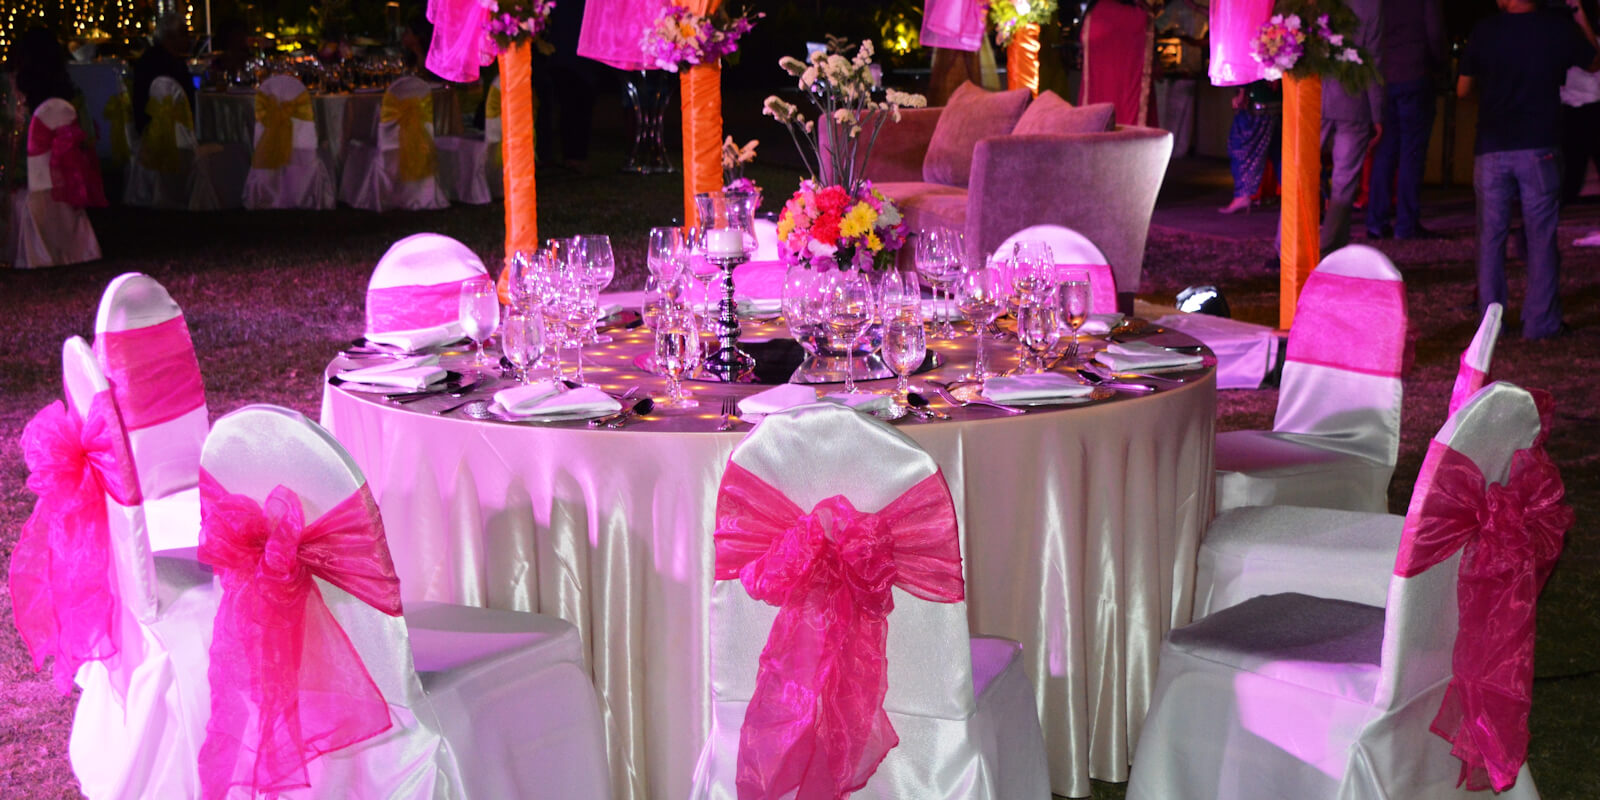 cover wedding ideas selection india chairs pallav covers and dining photos beautiful photo designs textile chair